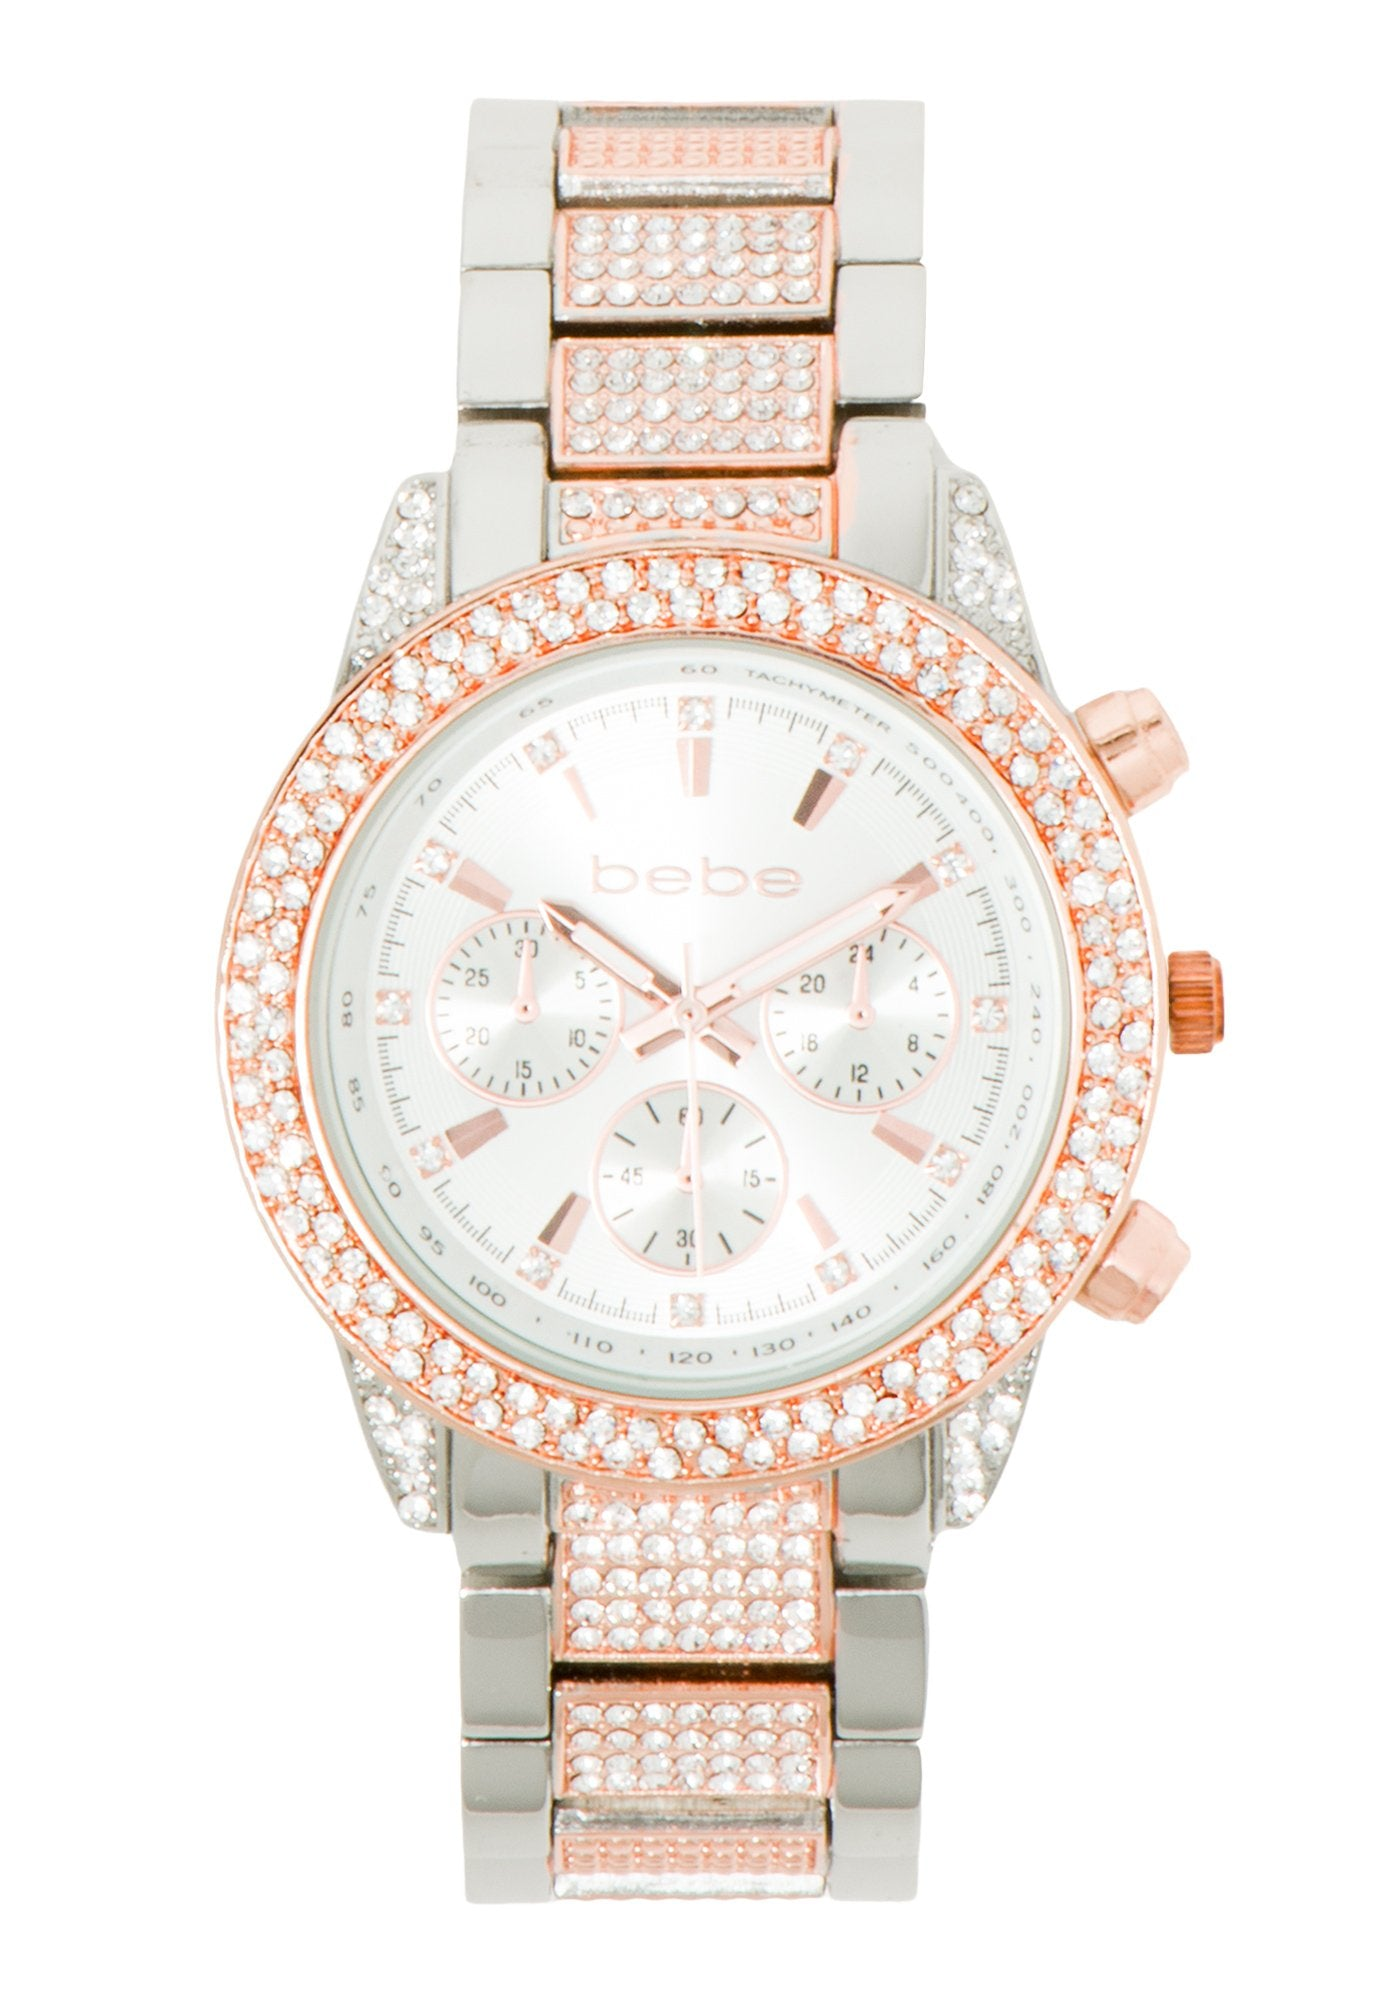 Bebe Women's Two Tone Rhinestone Watch in SILVER/ROSE GOLD Metal